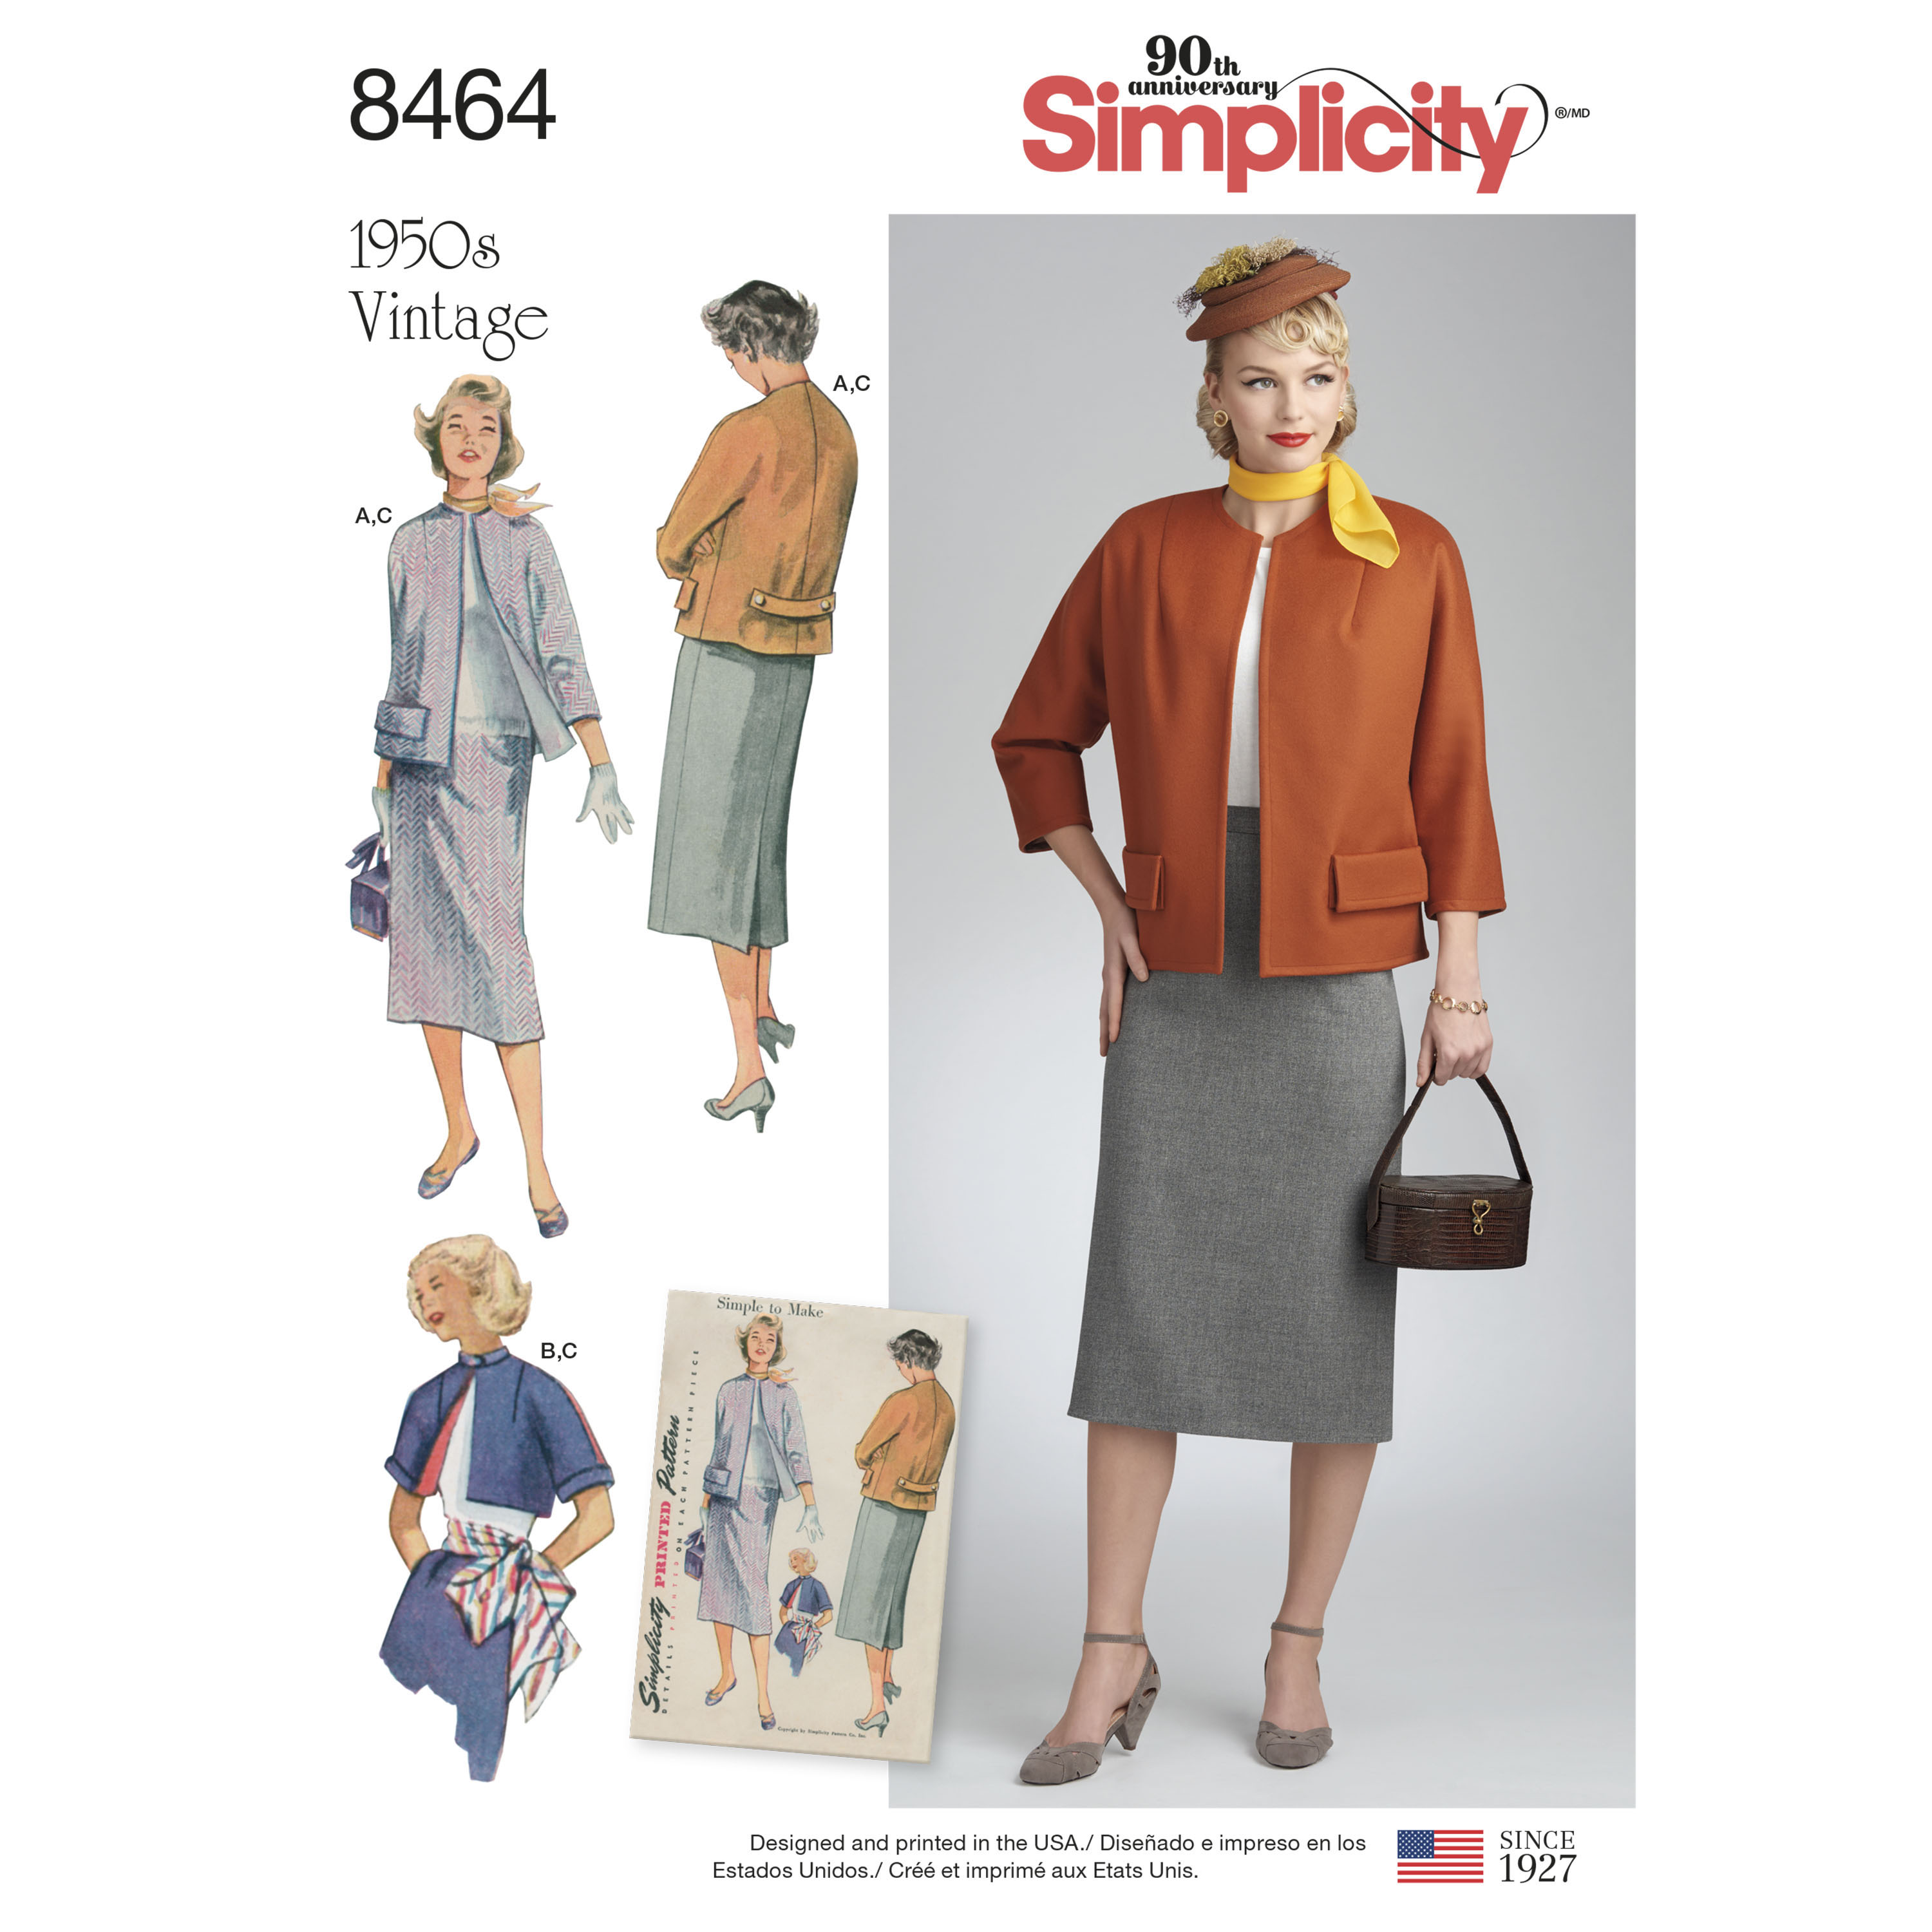 Simplicity Sewing Patterns - Page 14 of 64 - New Forest Fabrics